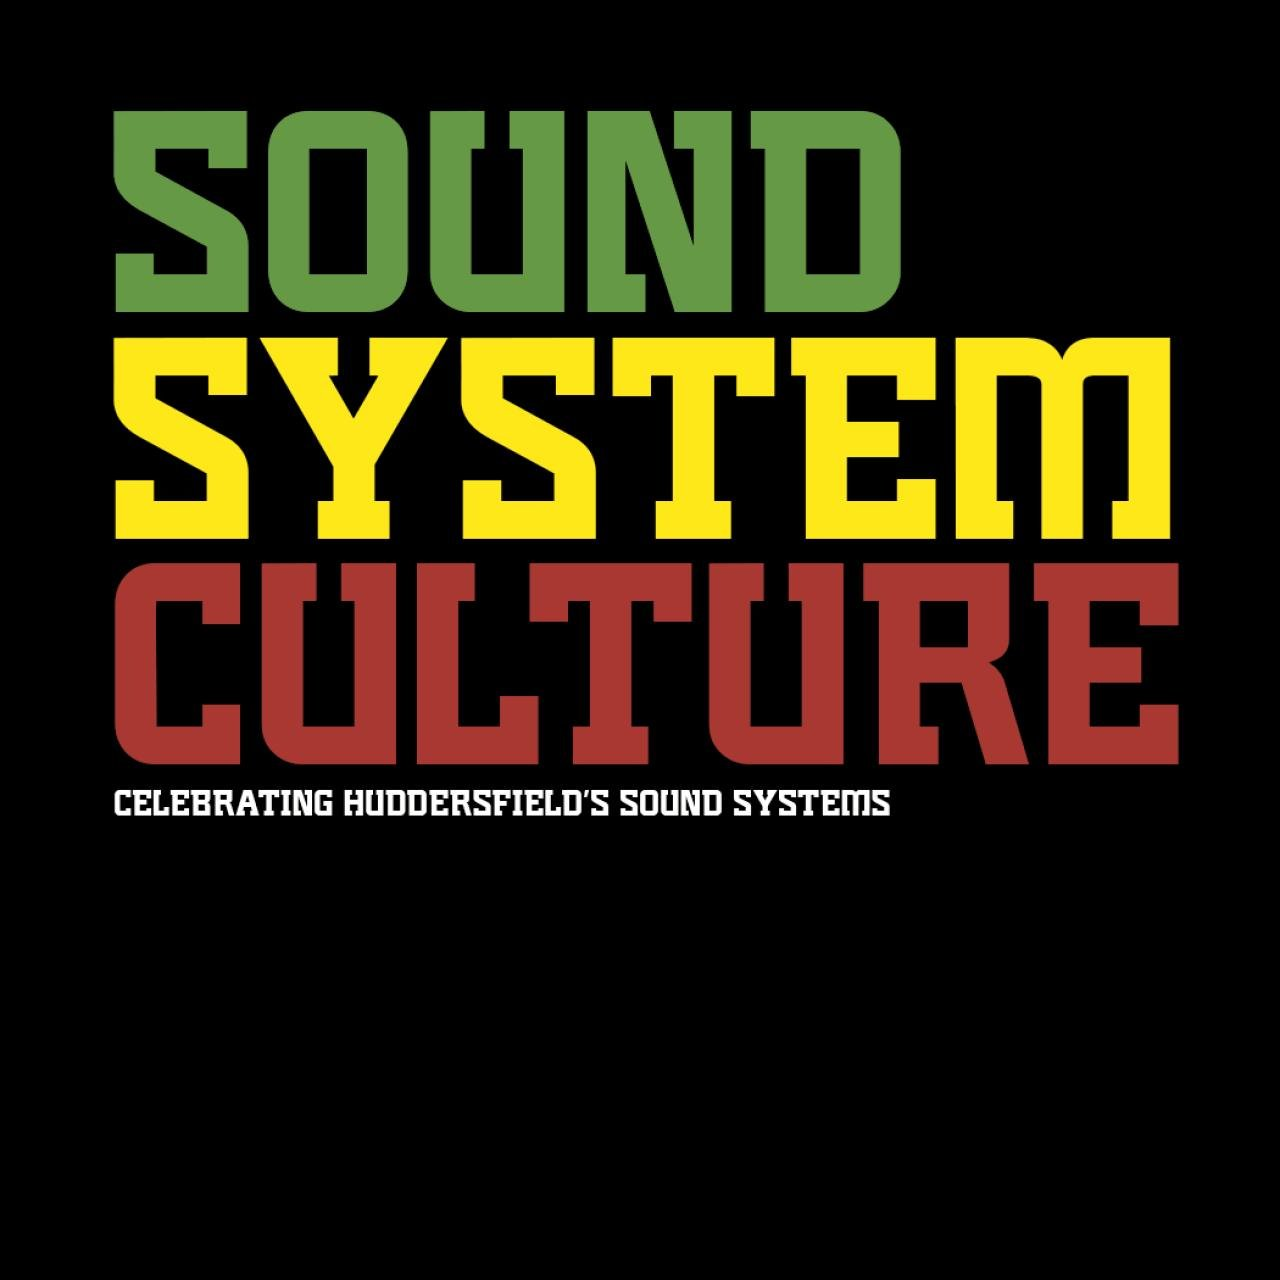 Ital tees bass culture and sound system clothing - Sound System Culture Celebrating Huddersfield S Sound Systems Amazon Co Uk Paul Huxtable Al Fingers Mandeep Samra 9780956777348 Books